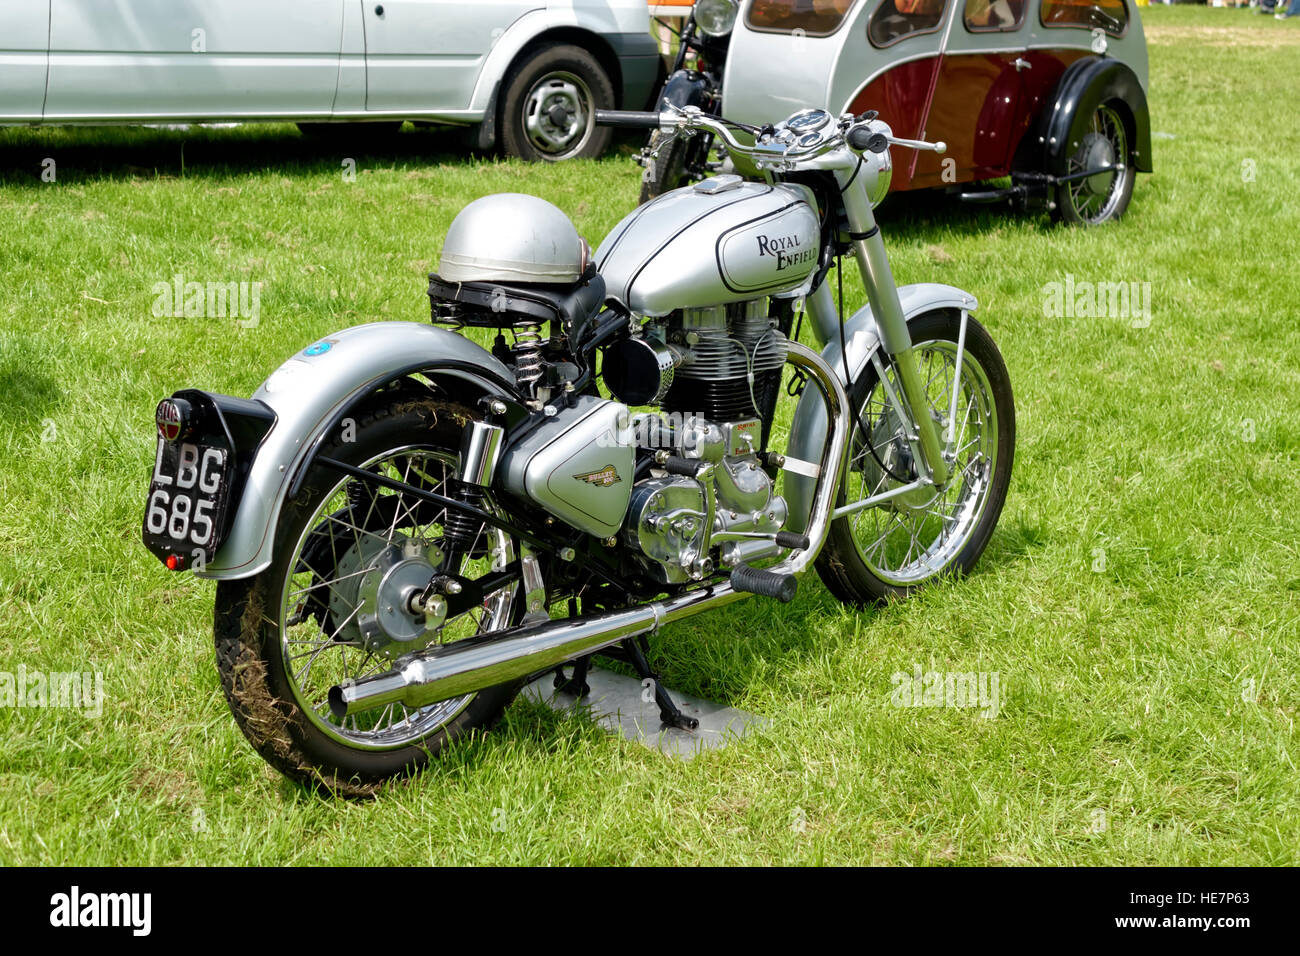 Royal enfield bullet pictures - A Royal Enfield Bullet 500 Classic Motorcycle At The Vintage Nostalgia Show Stockton Wiltshire